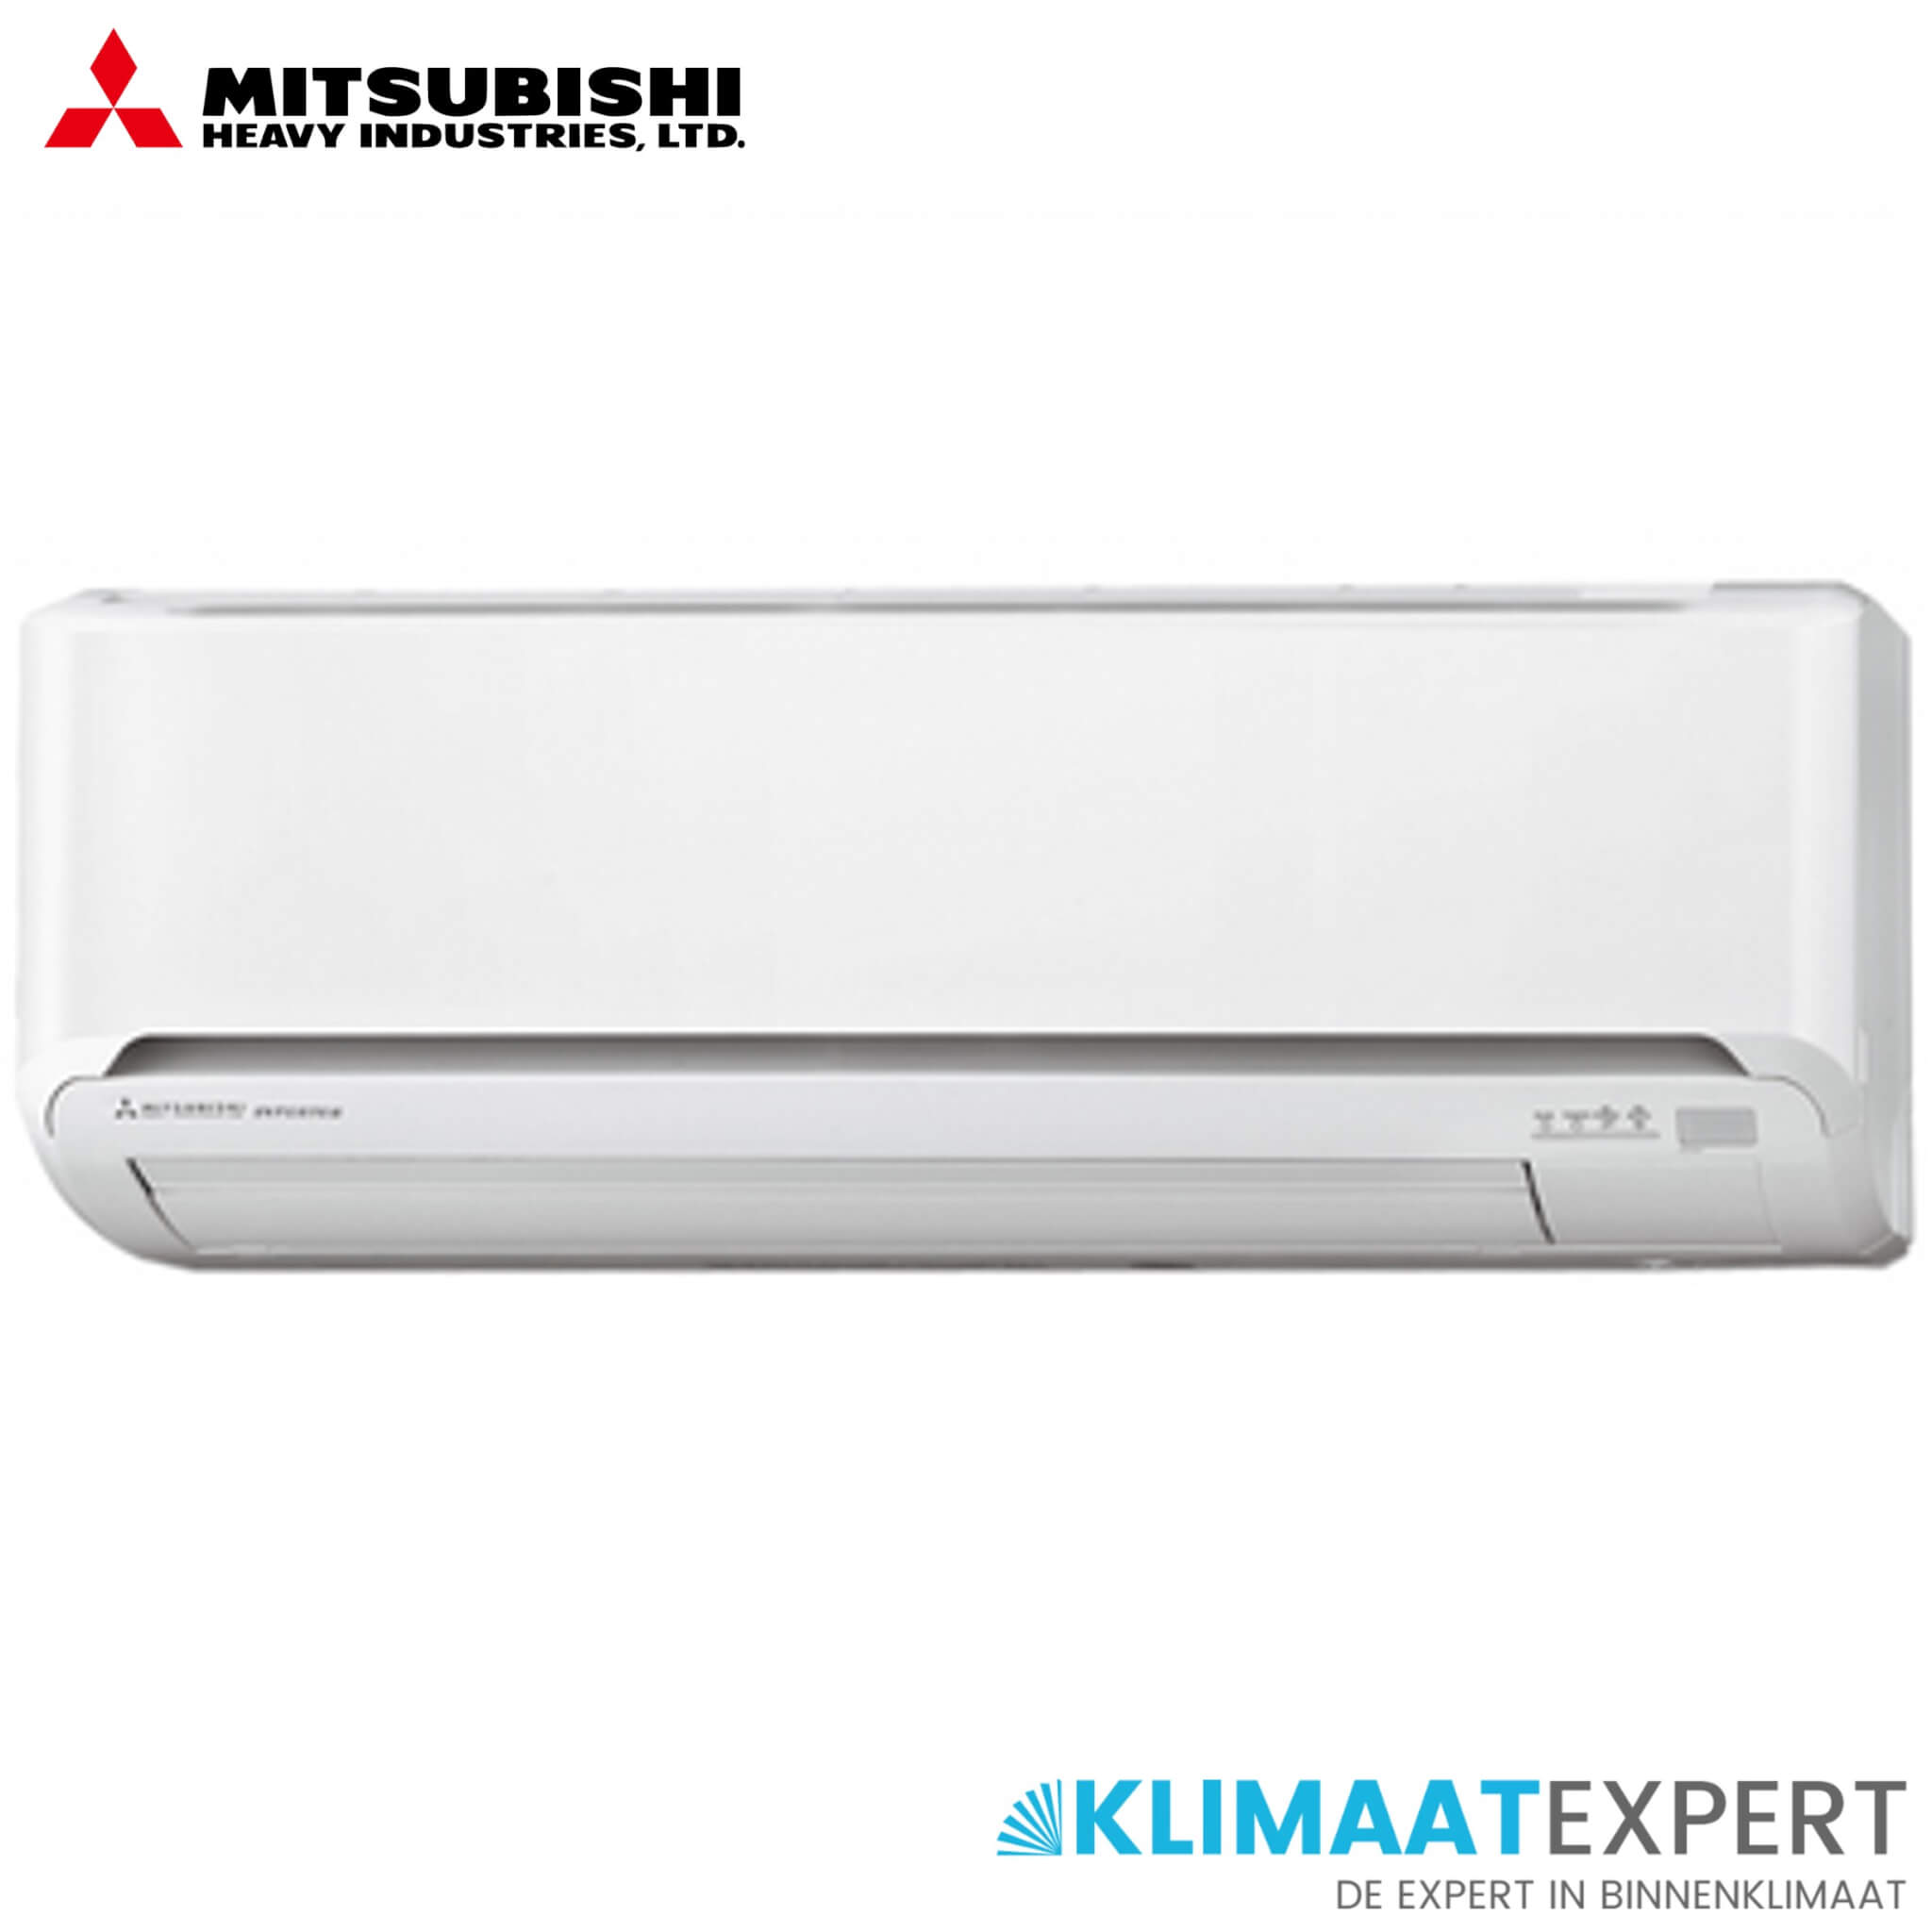 SRK SRC 60 wandmodel airconditioning Mitsubishi Heavy Industries